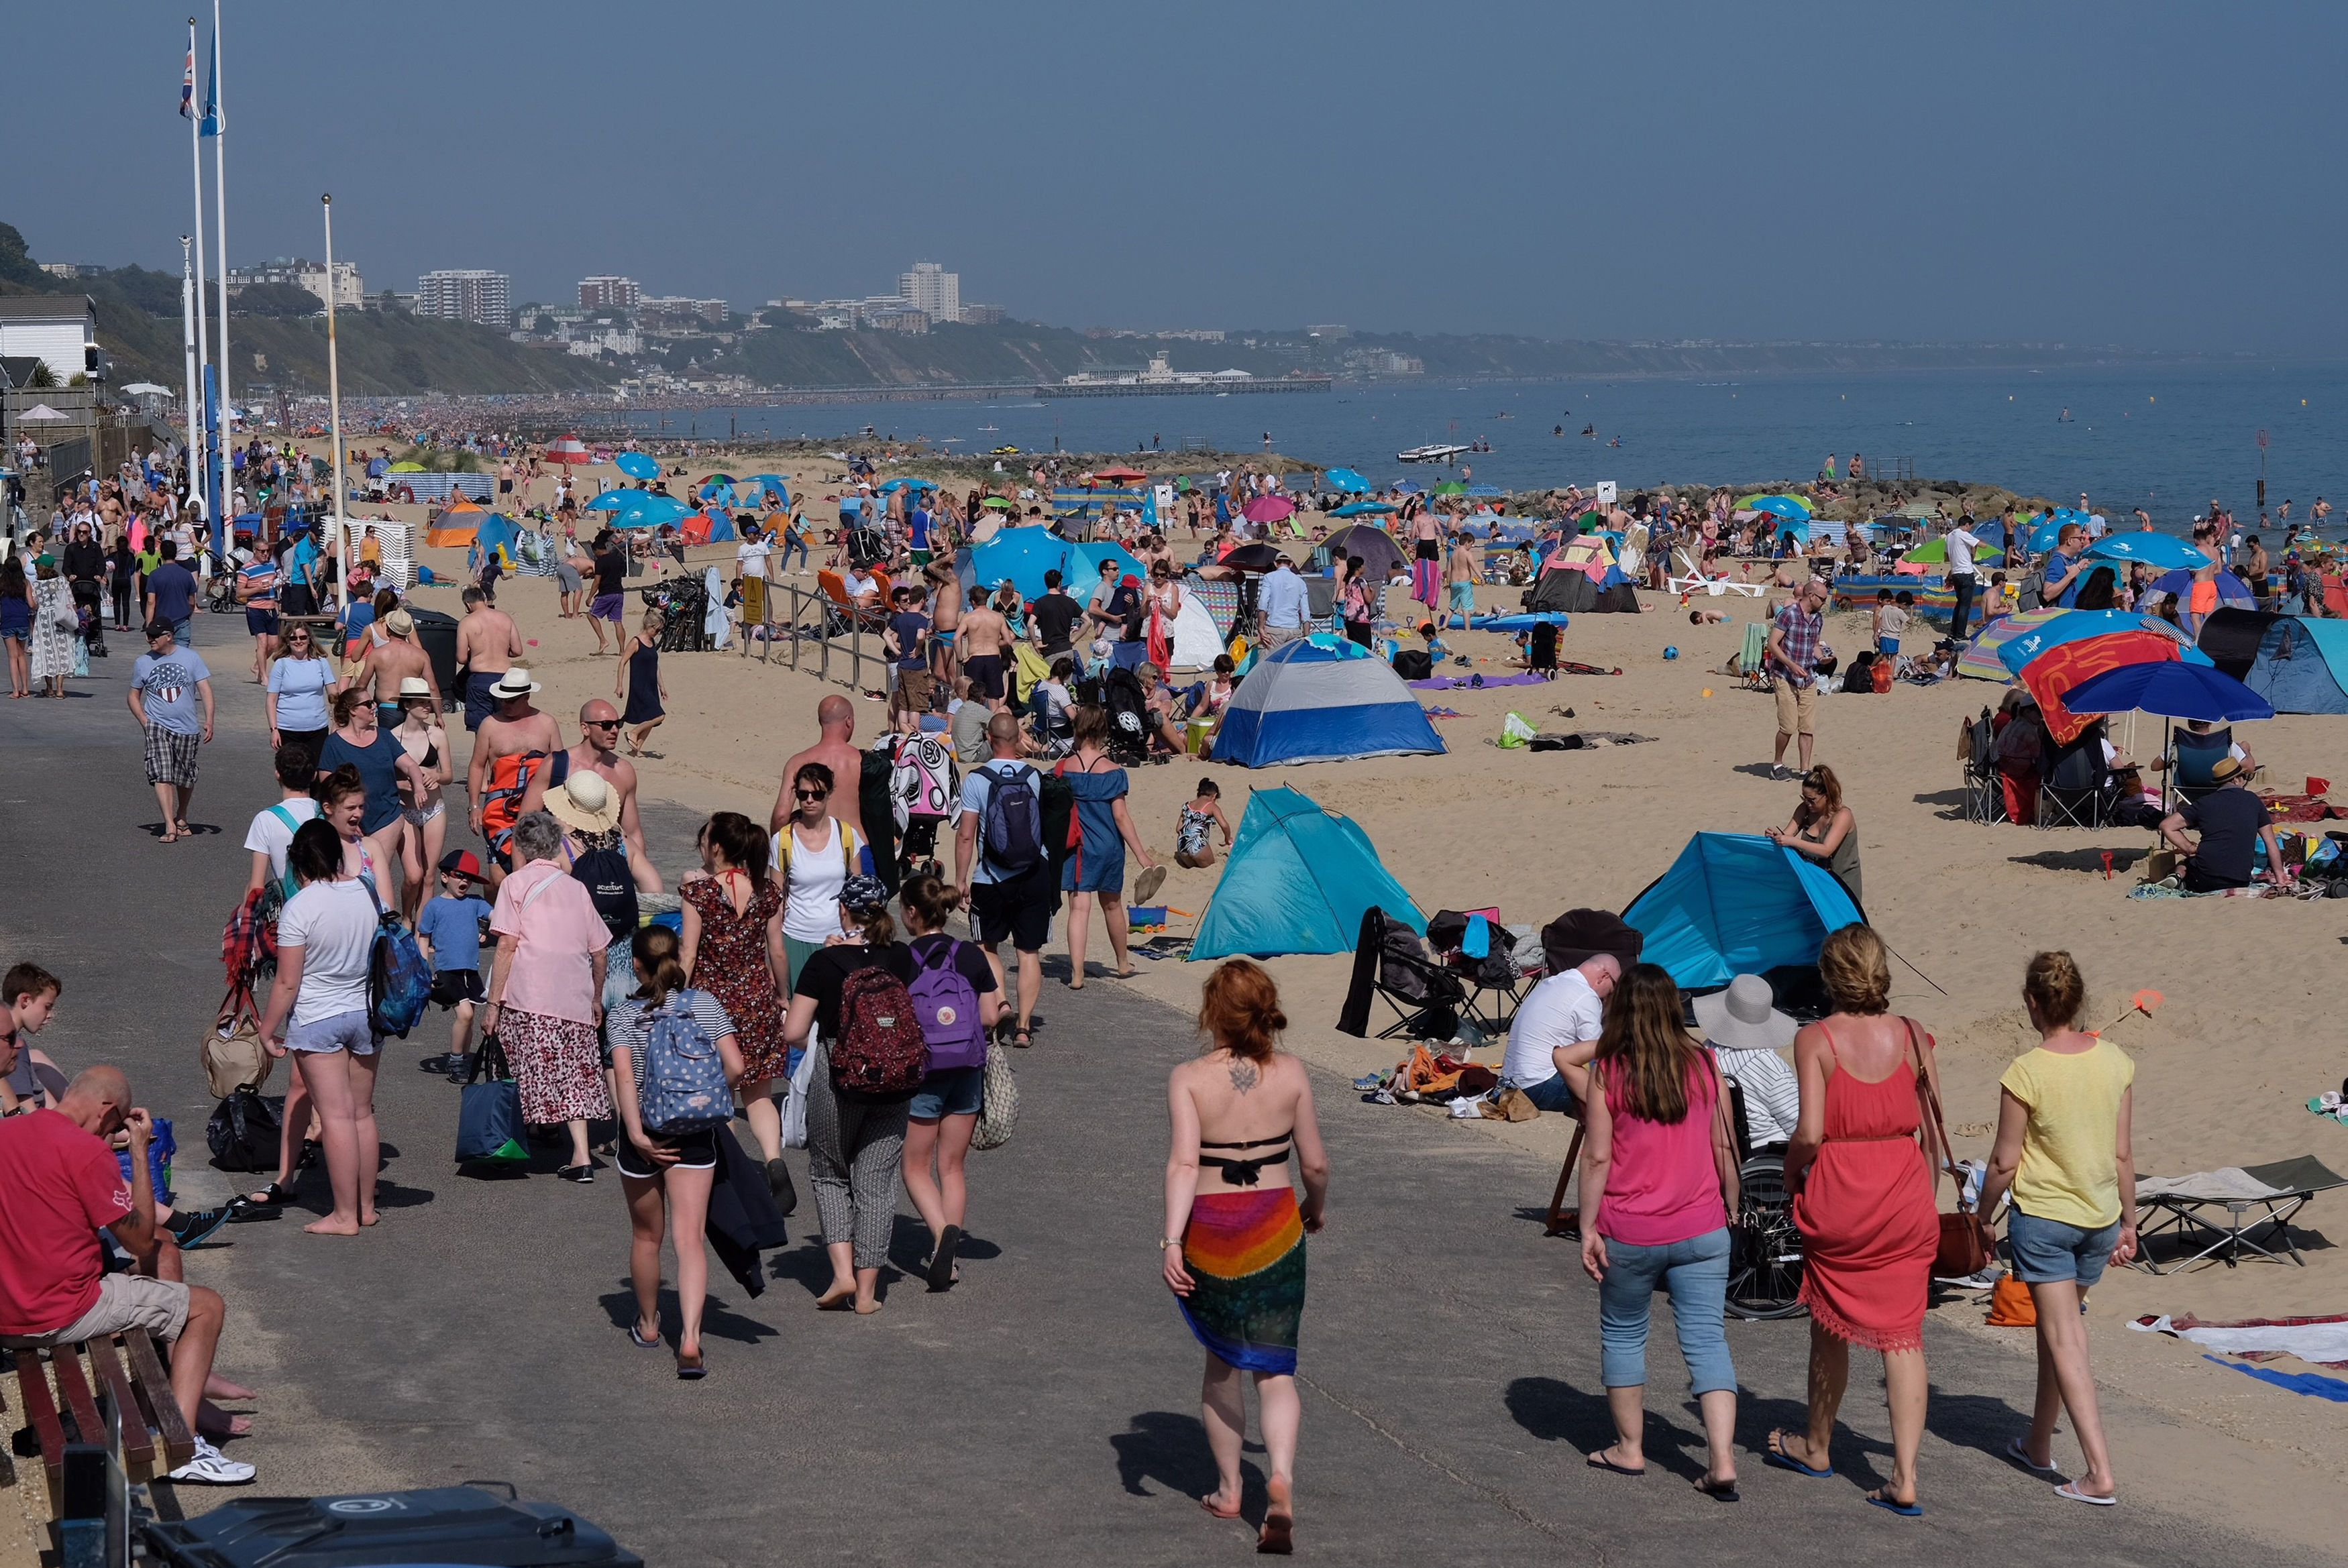 Heatwaves could lead to the deaths of 7,000 people a year by 2050, MPs have warned.